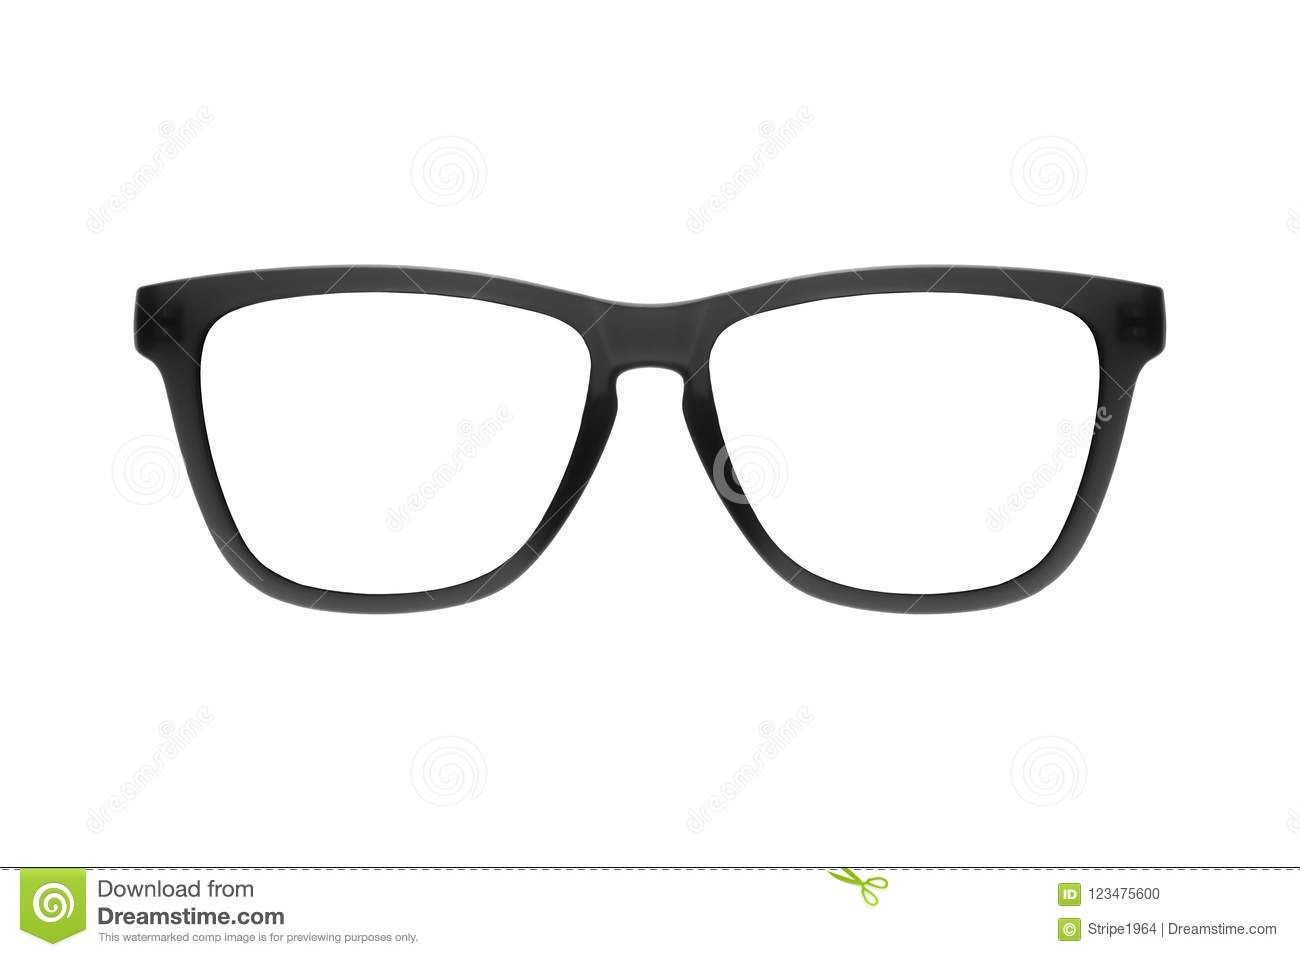 Eye glasses frame black isolated on white background